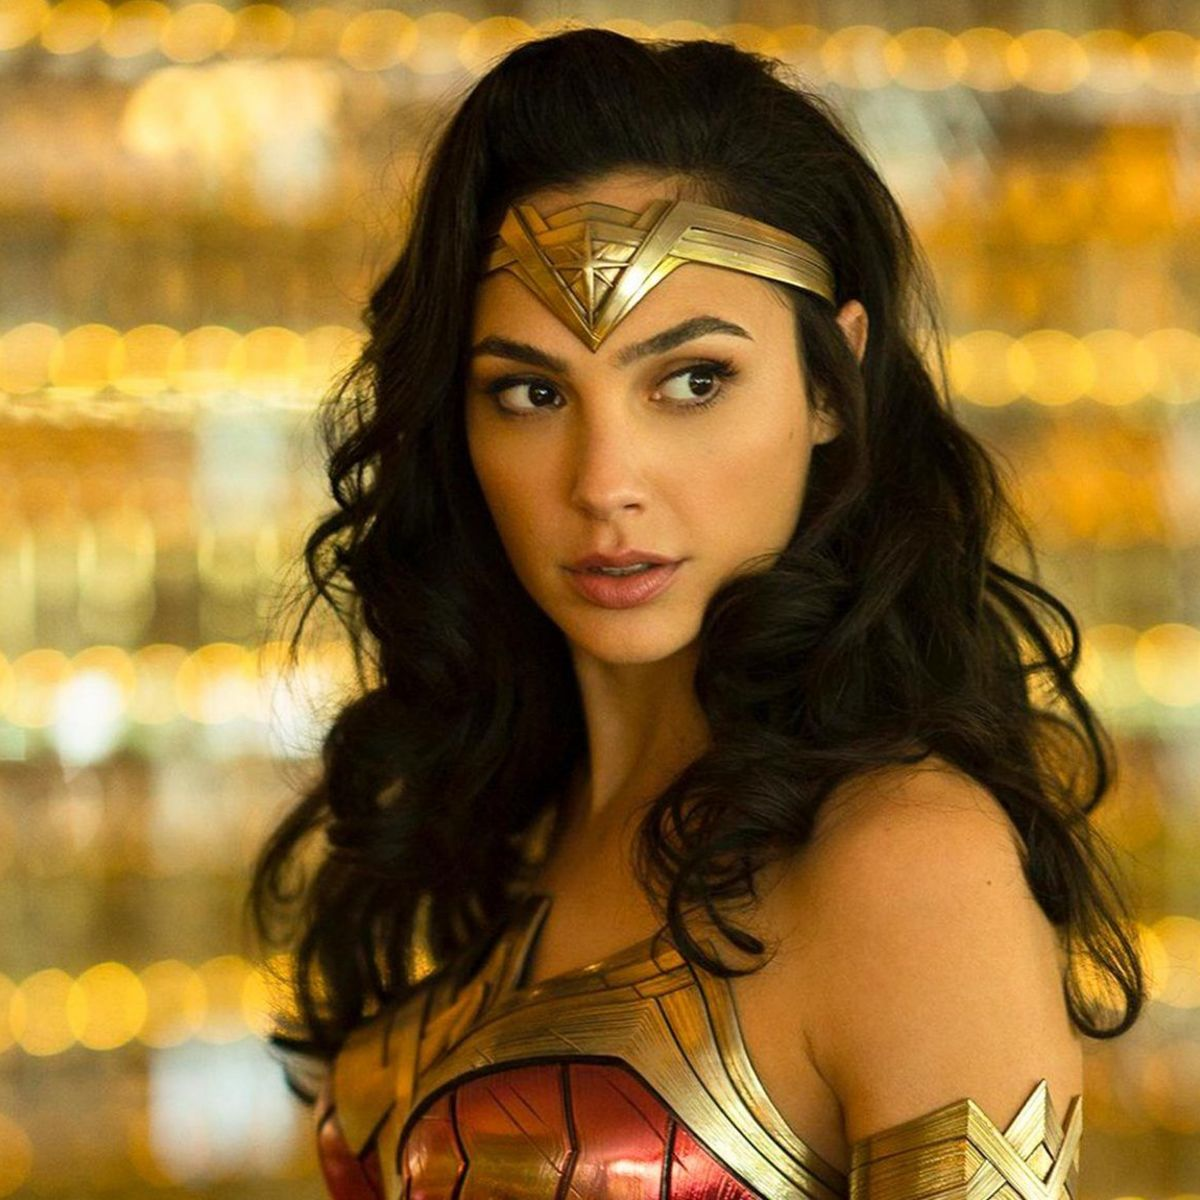 Wonder Woman 1984 Delayed, Here's The New Release Date